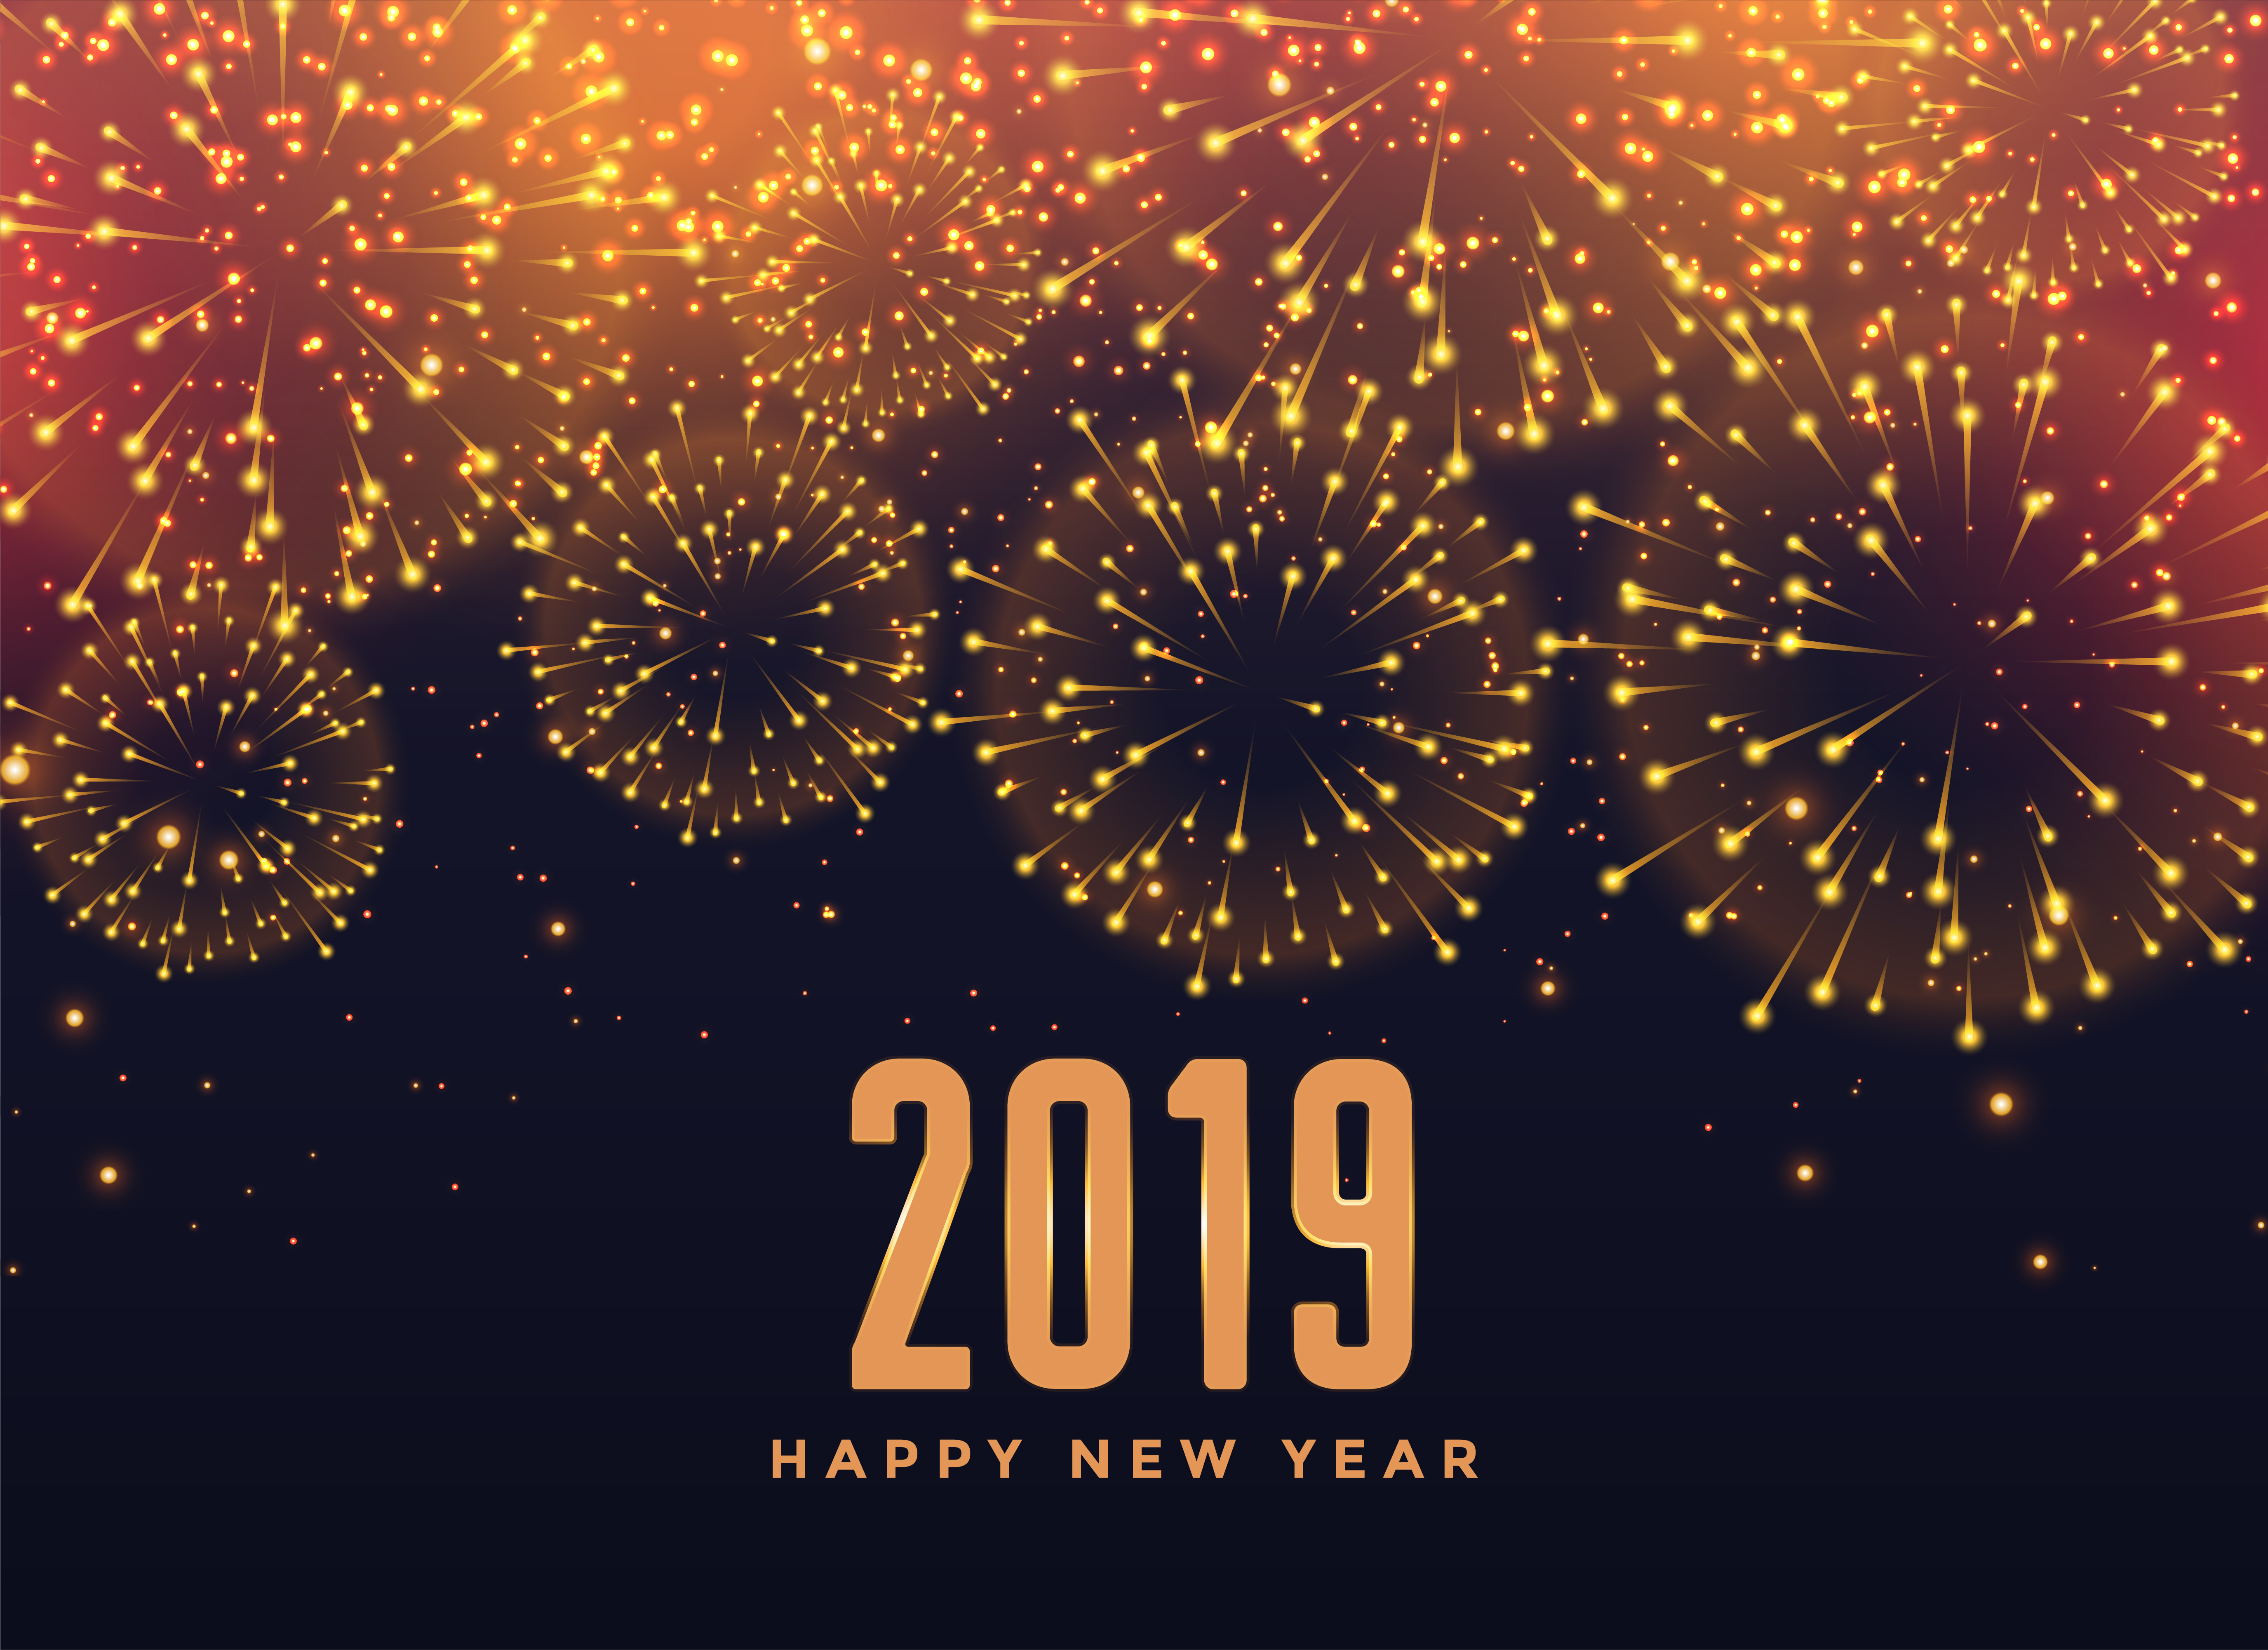 2019 happy new year fireworks background download free vector art stock graphics images